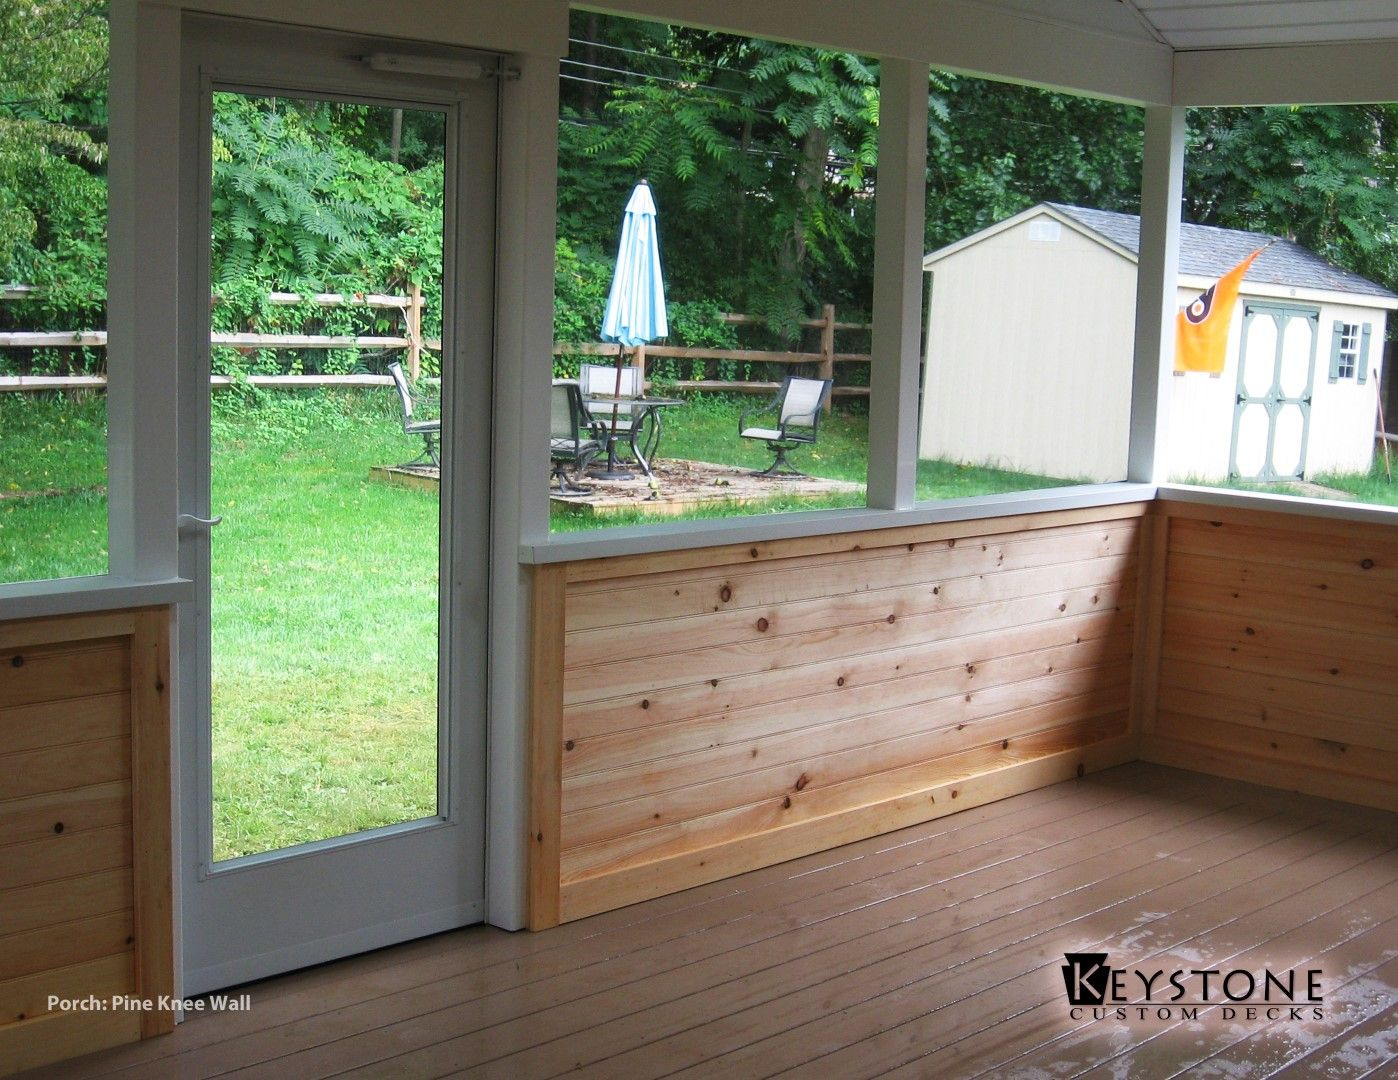 Custom Closed Porch With A Finished Pine Knee Wall. Built